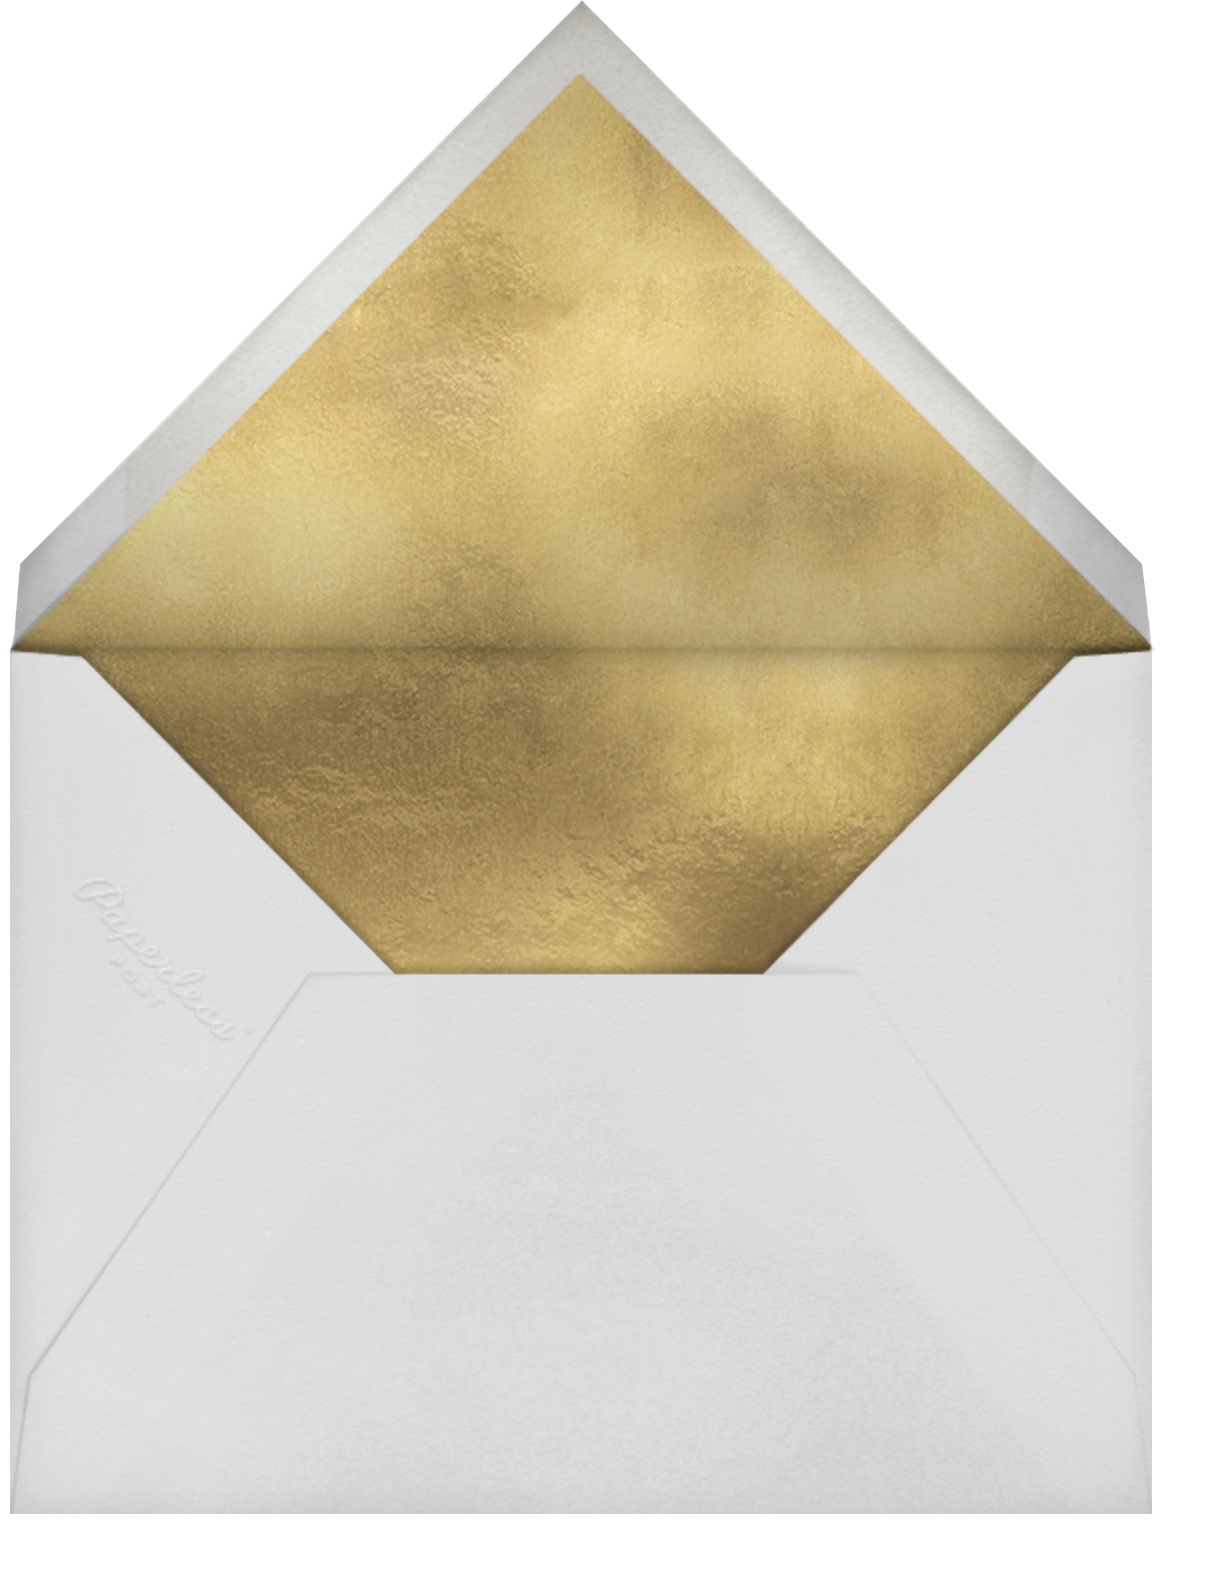 Chronology (Save the Date) - White - Paperless Post - Photo  - envelope back